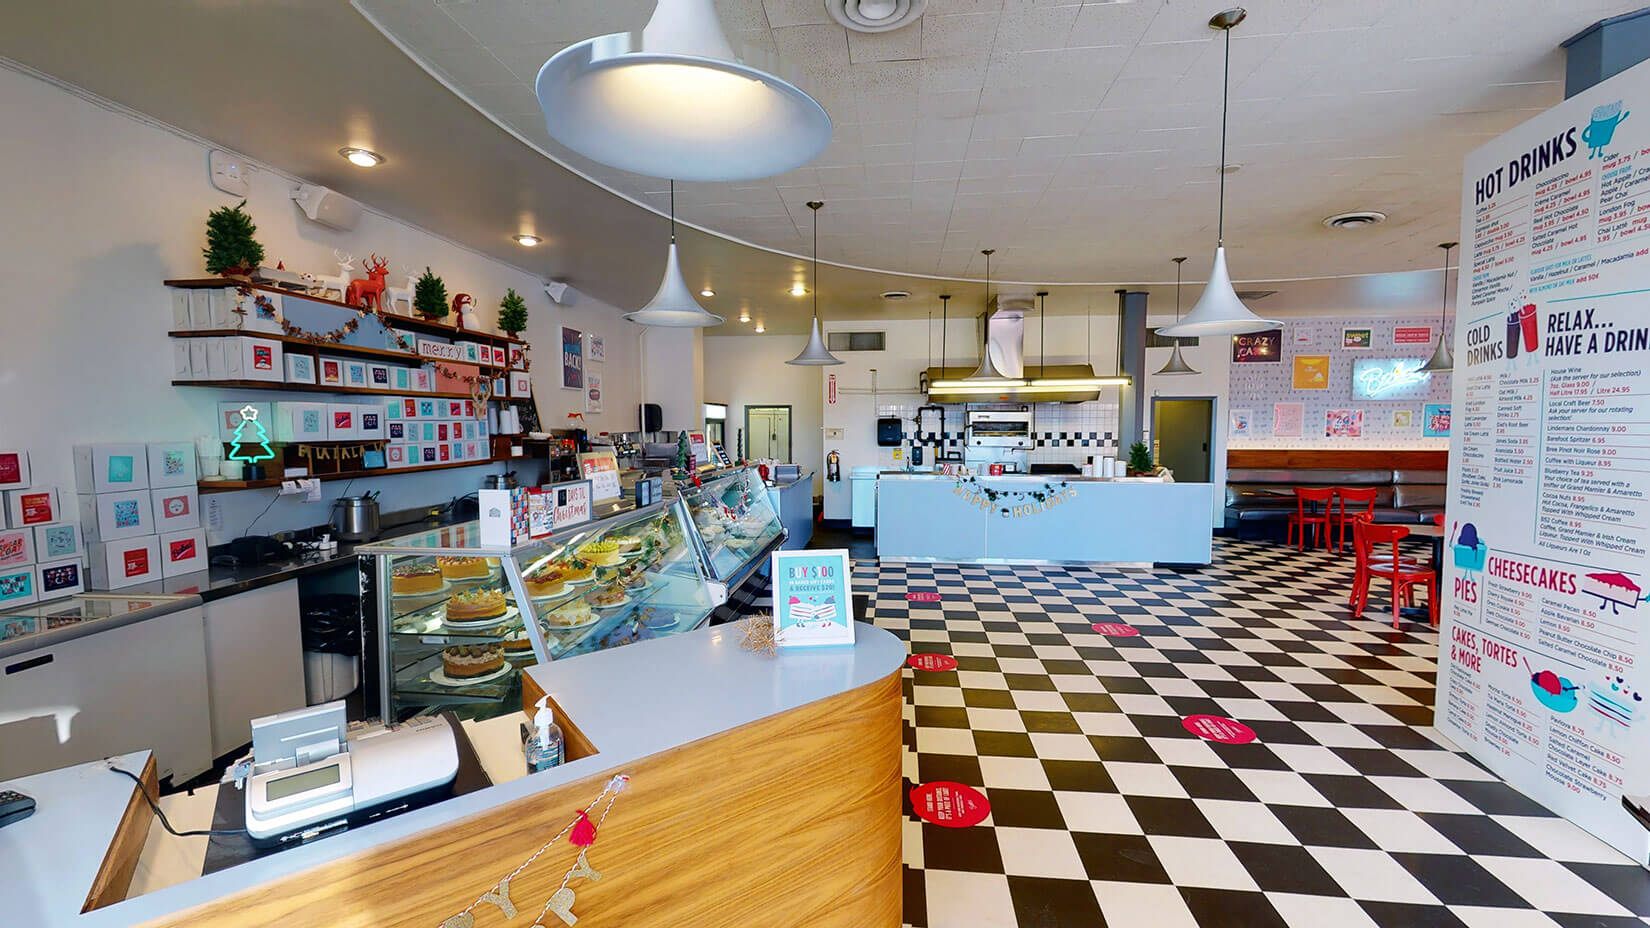 Retro diner cake display and cash counter